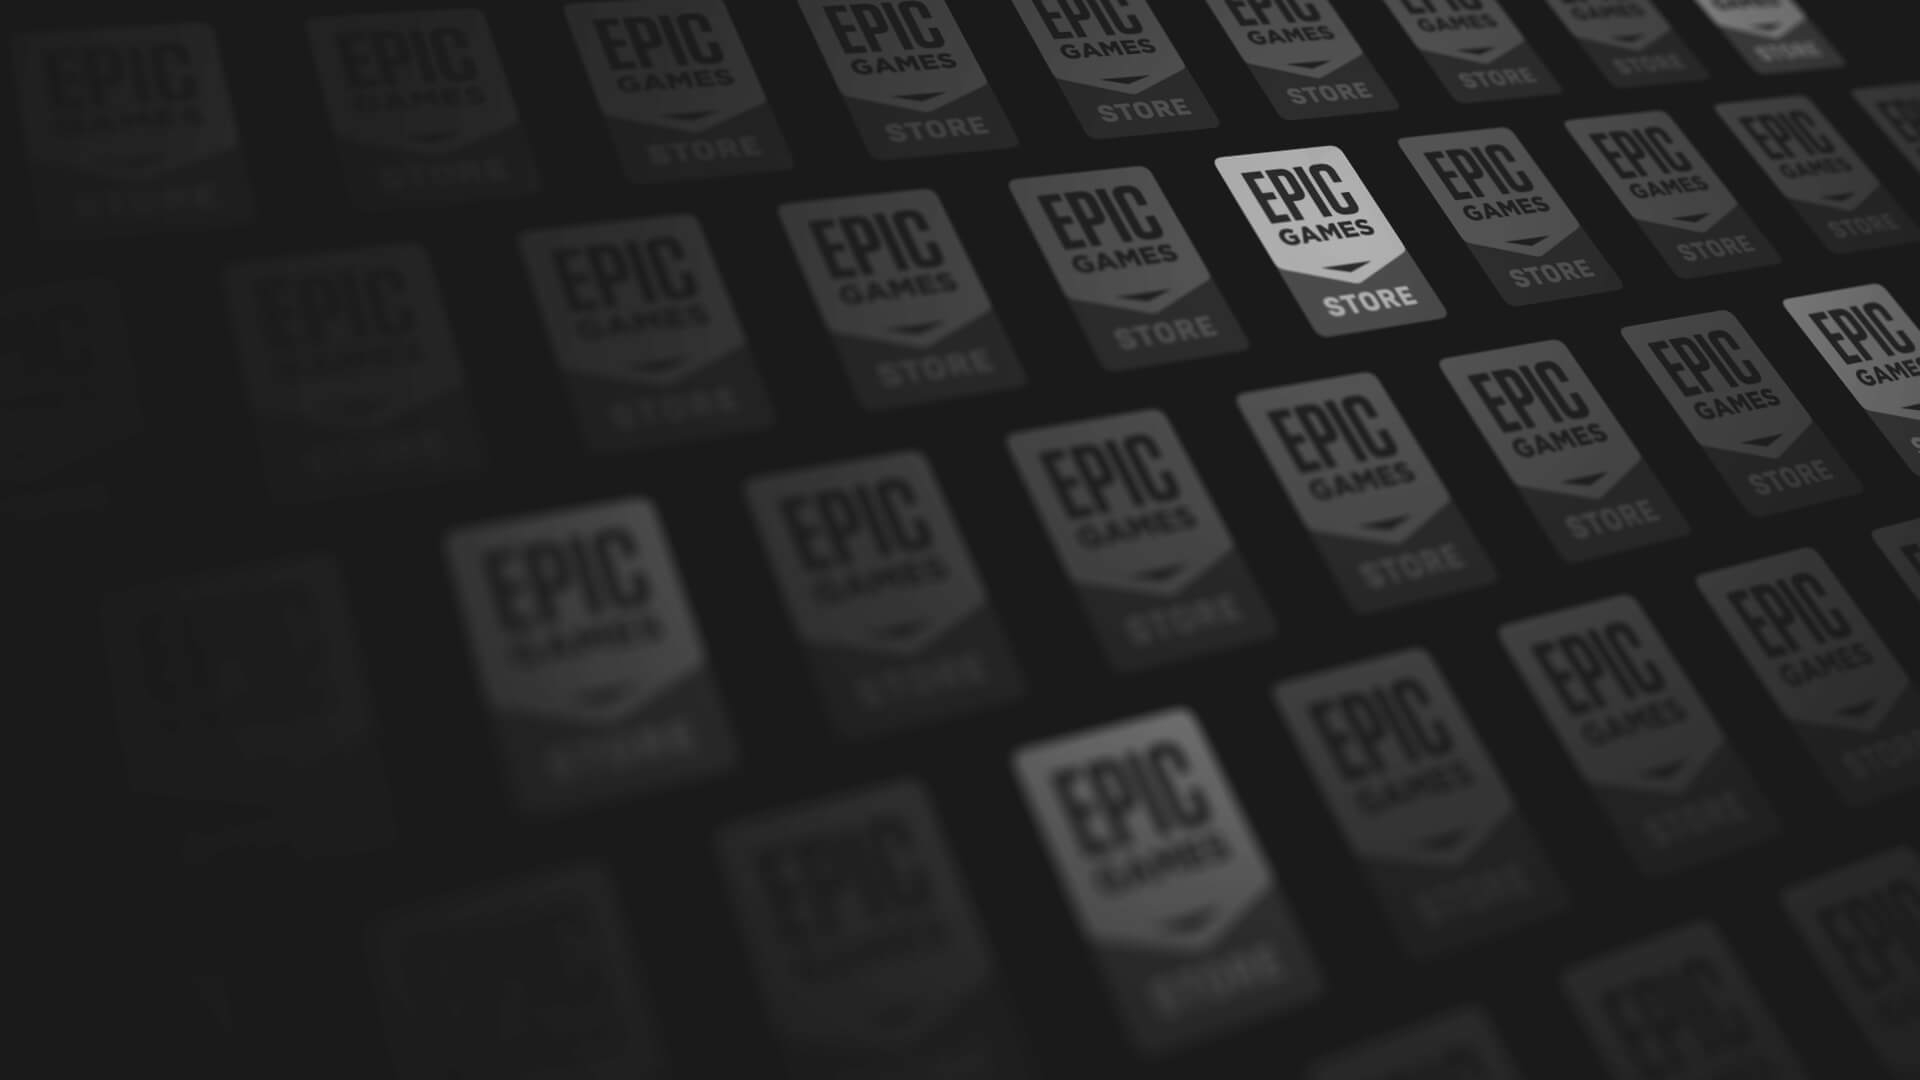 Epic Games Store Reached Over 160 Million Users by the End of 2020